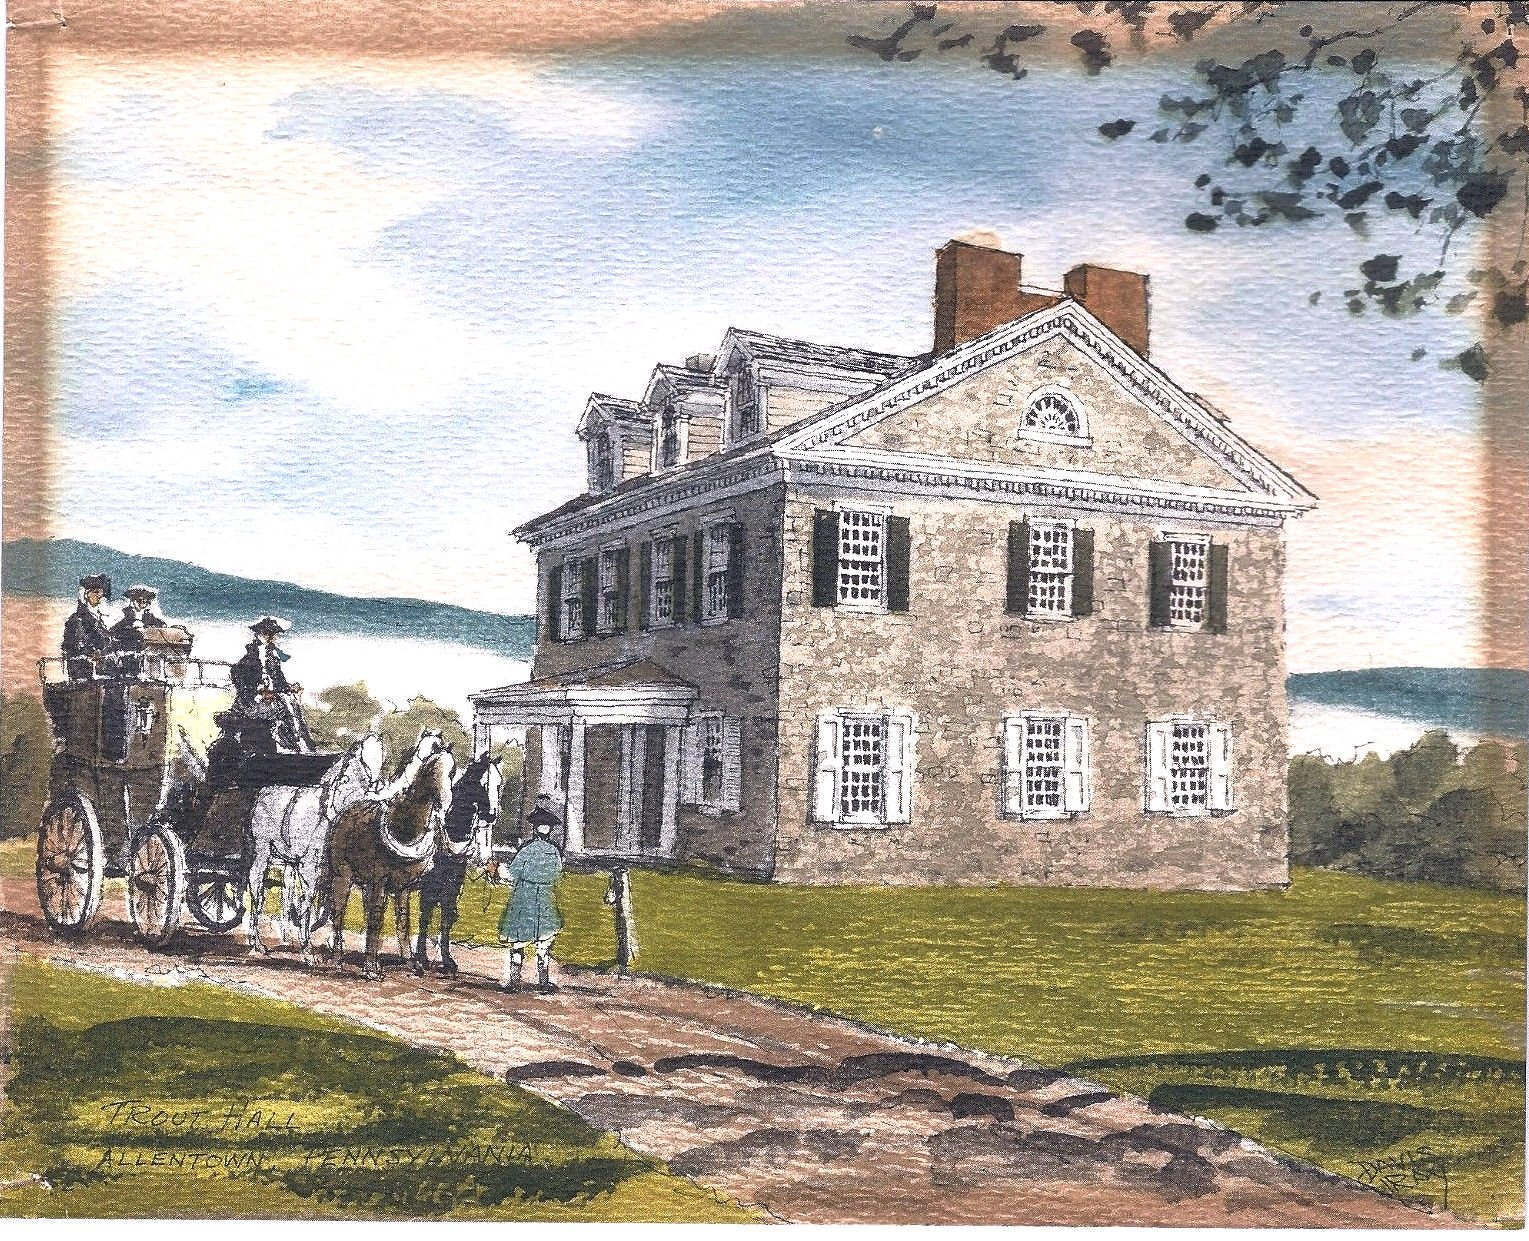 An artist's rendition of Trout Hall during the Colonial Era.